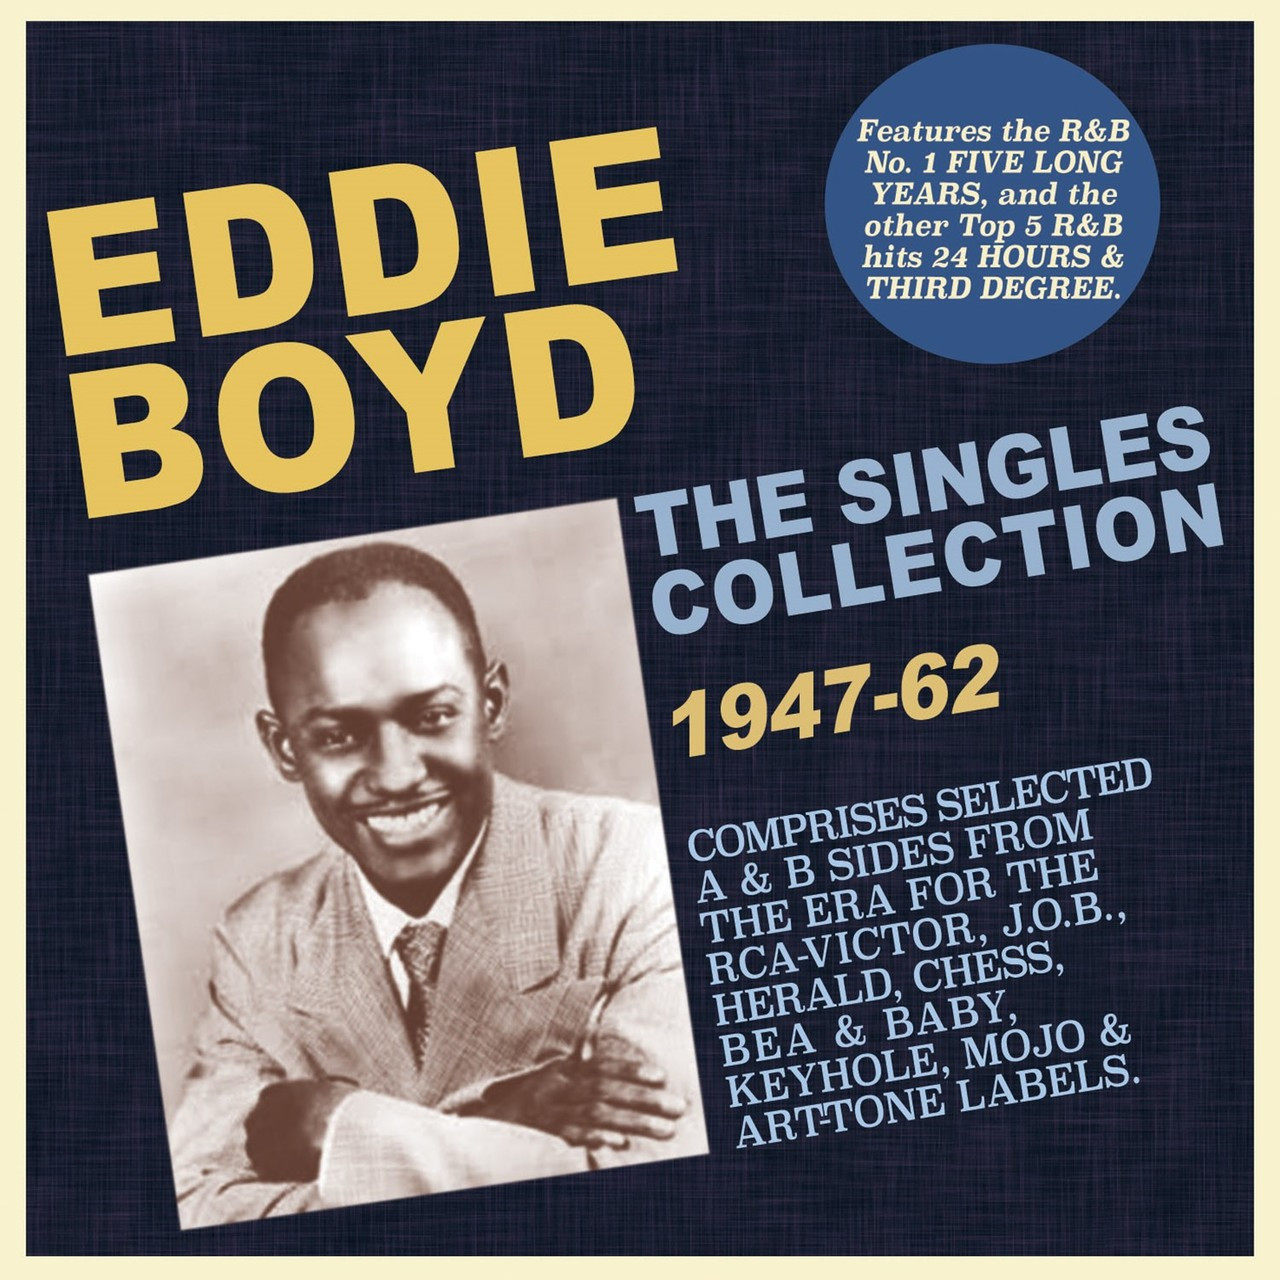 Eddie Boyd - The Collection 1947-62 - 2 CD SET